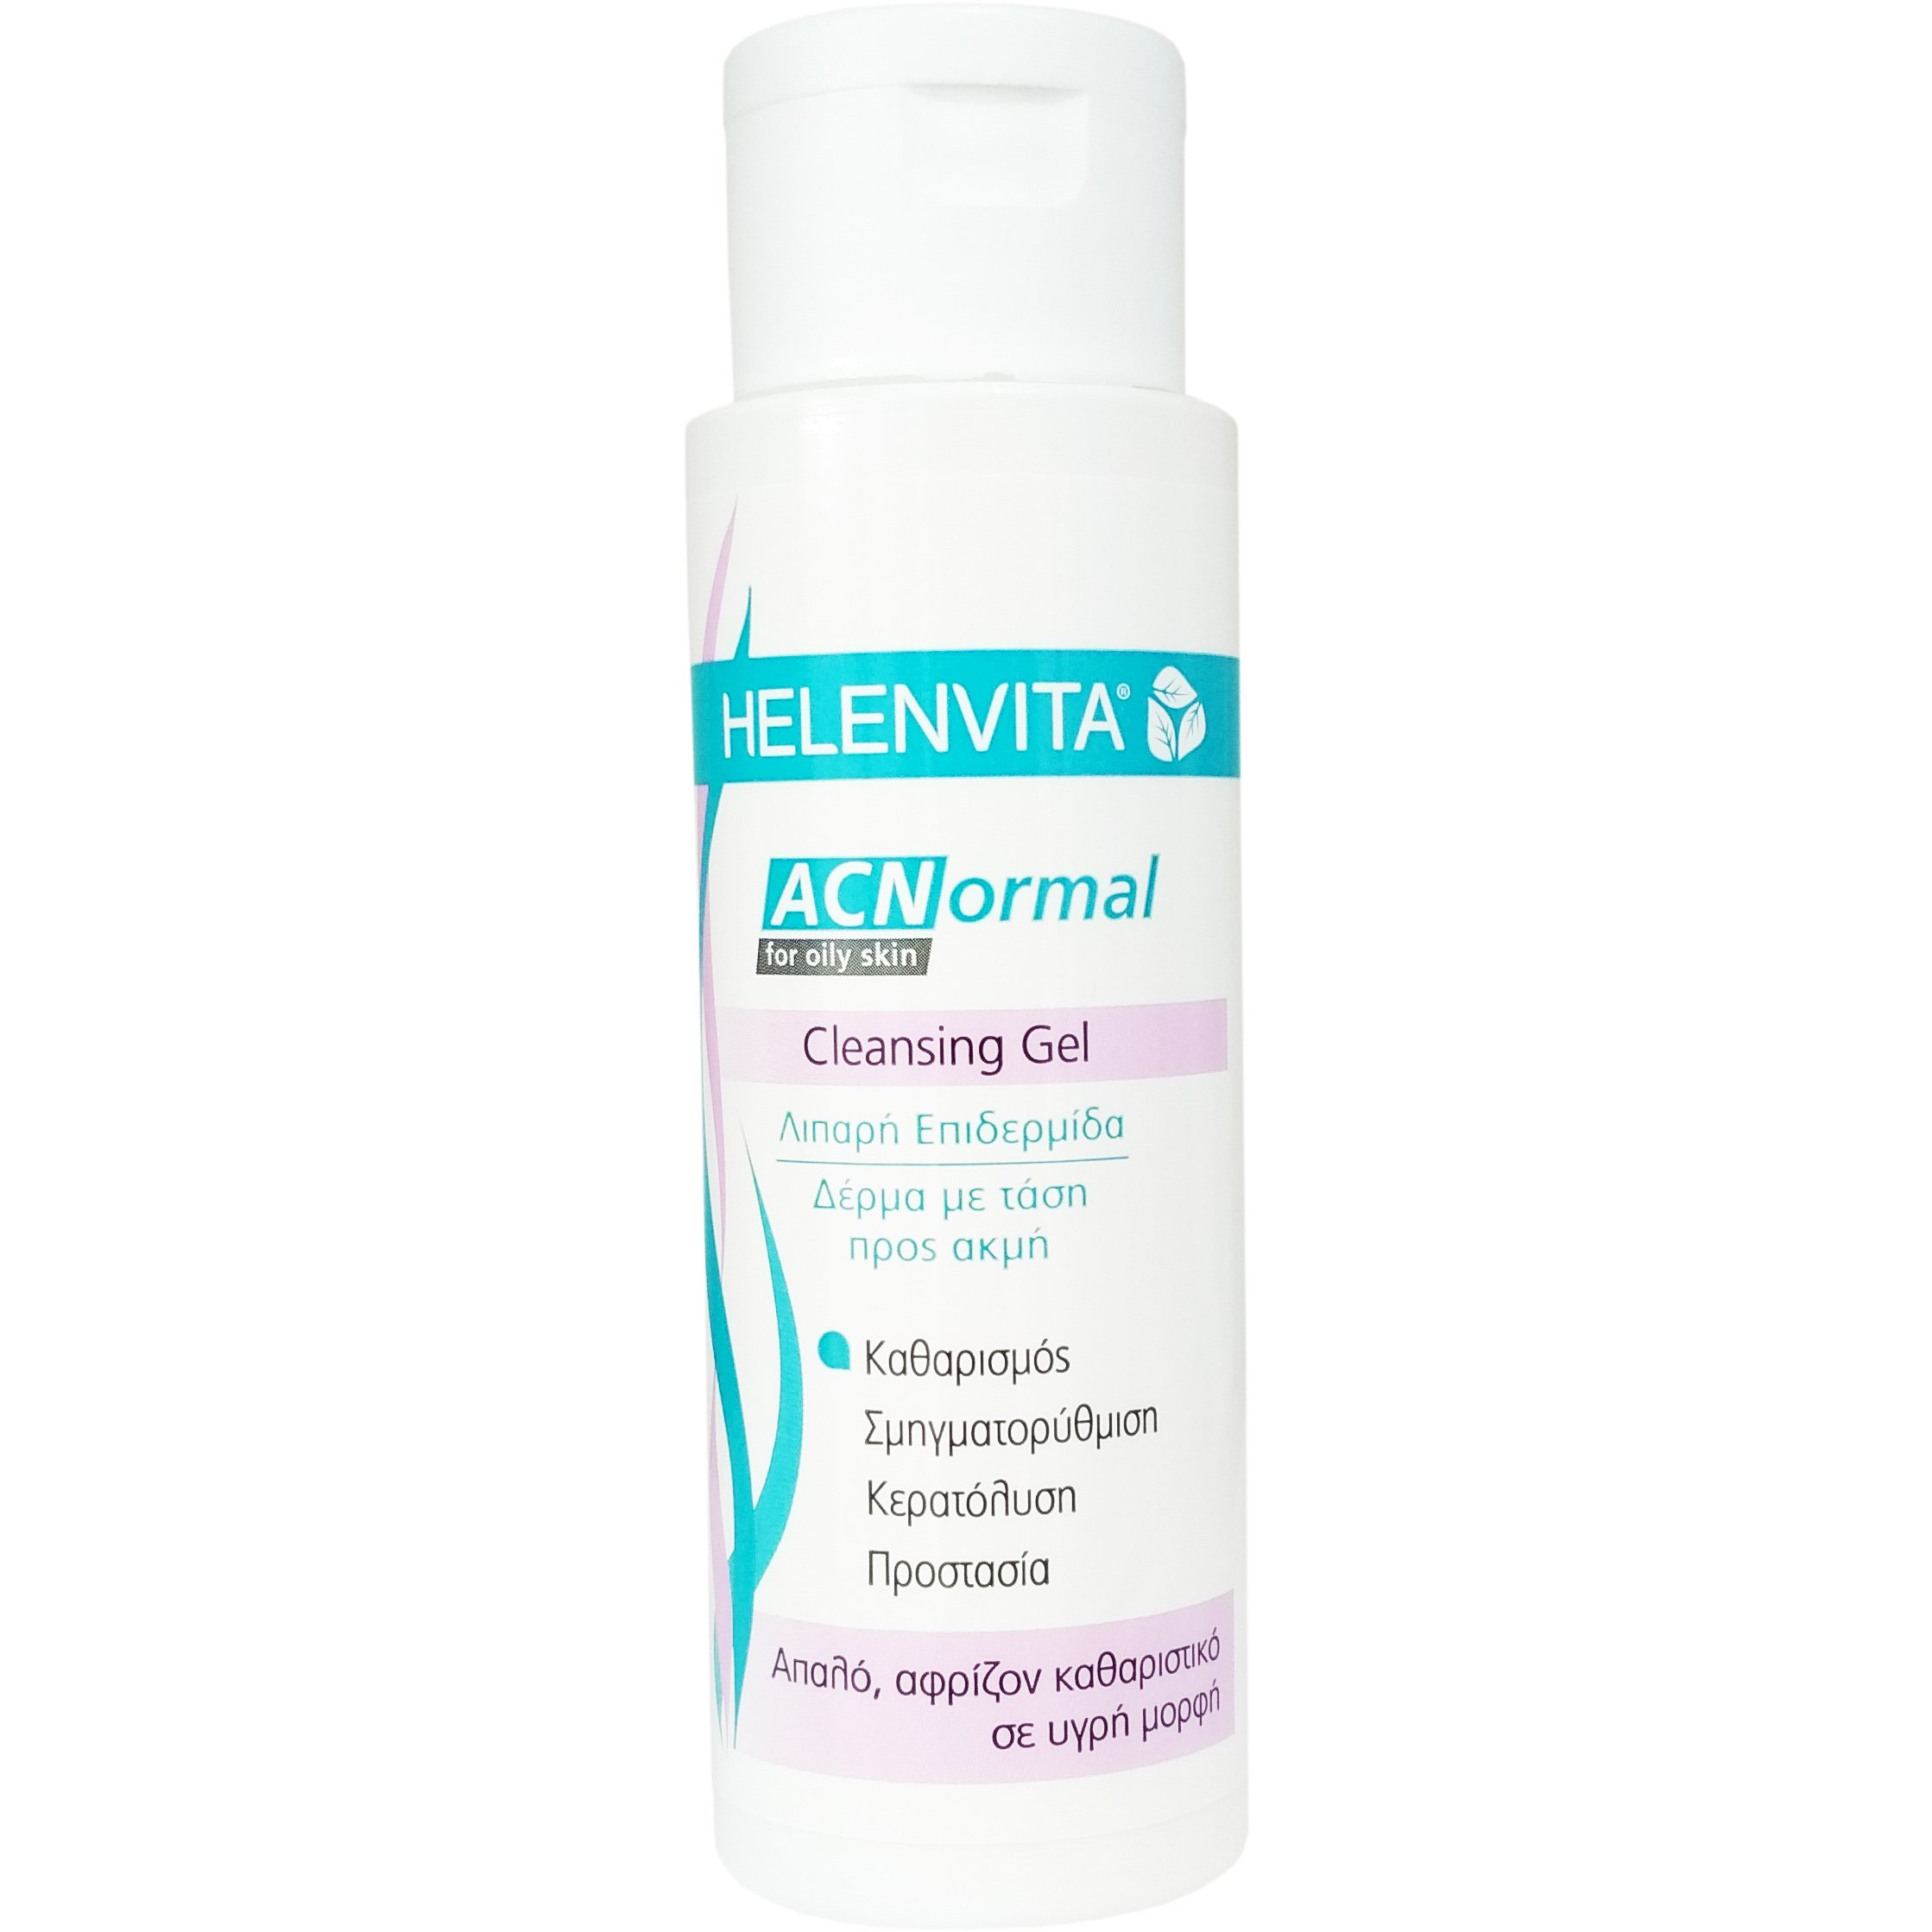 Με κάθε αγορά Helenvita Acnormal, δώρο Acnormal Cleansing gel 100ml